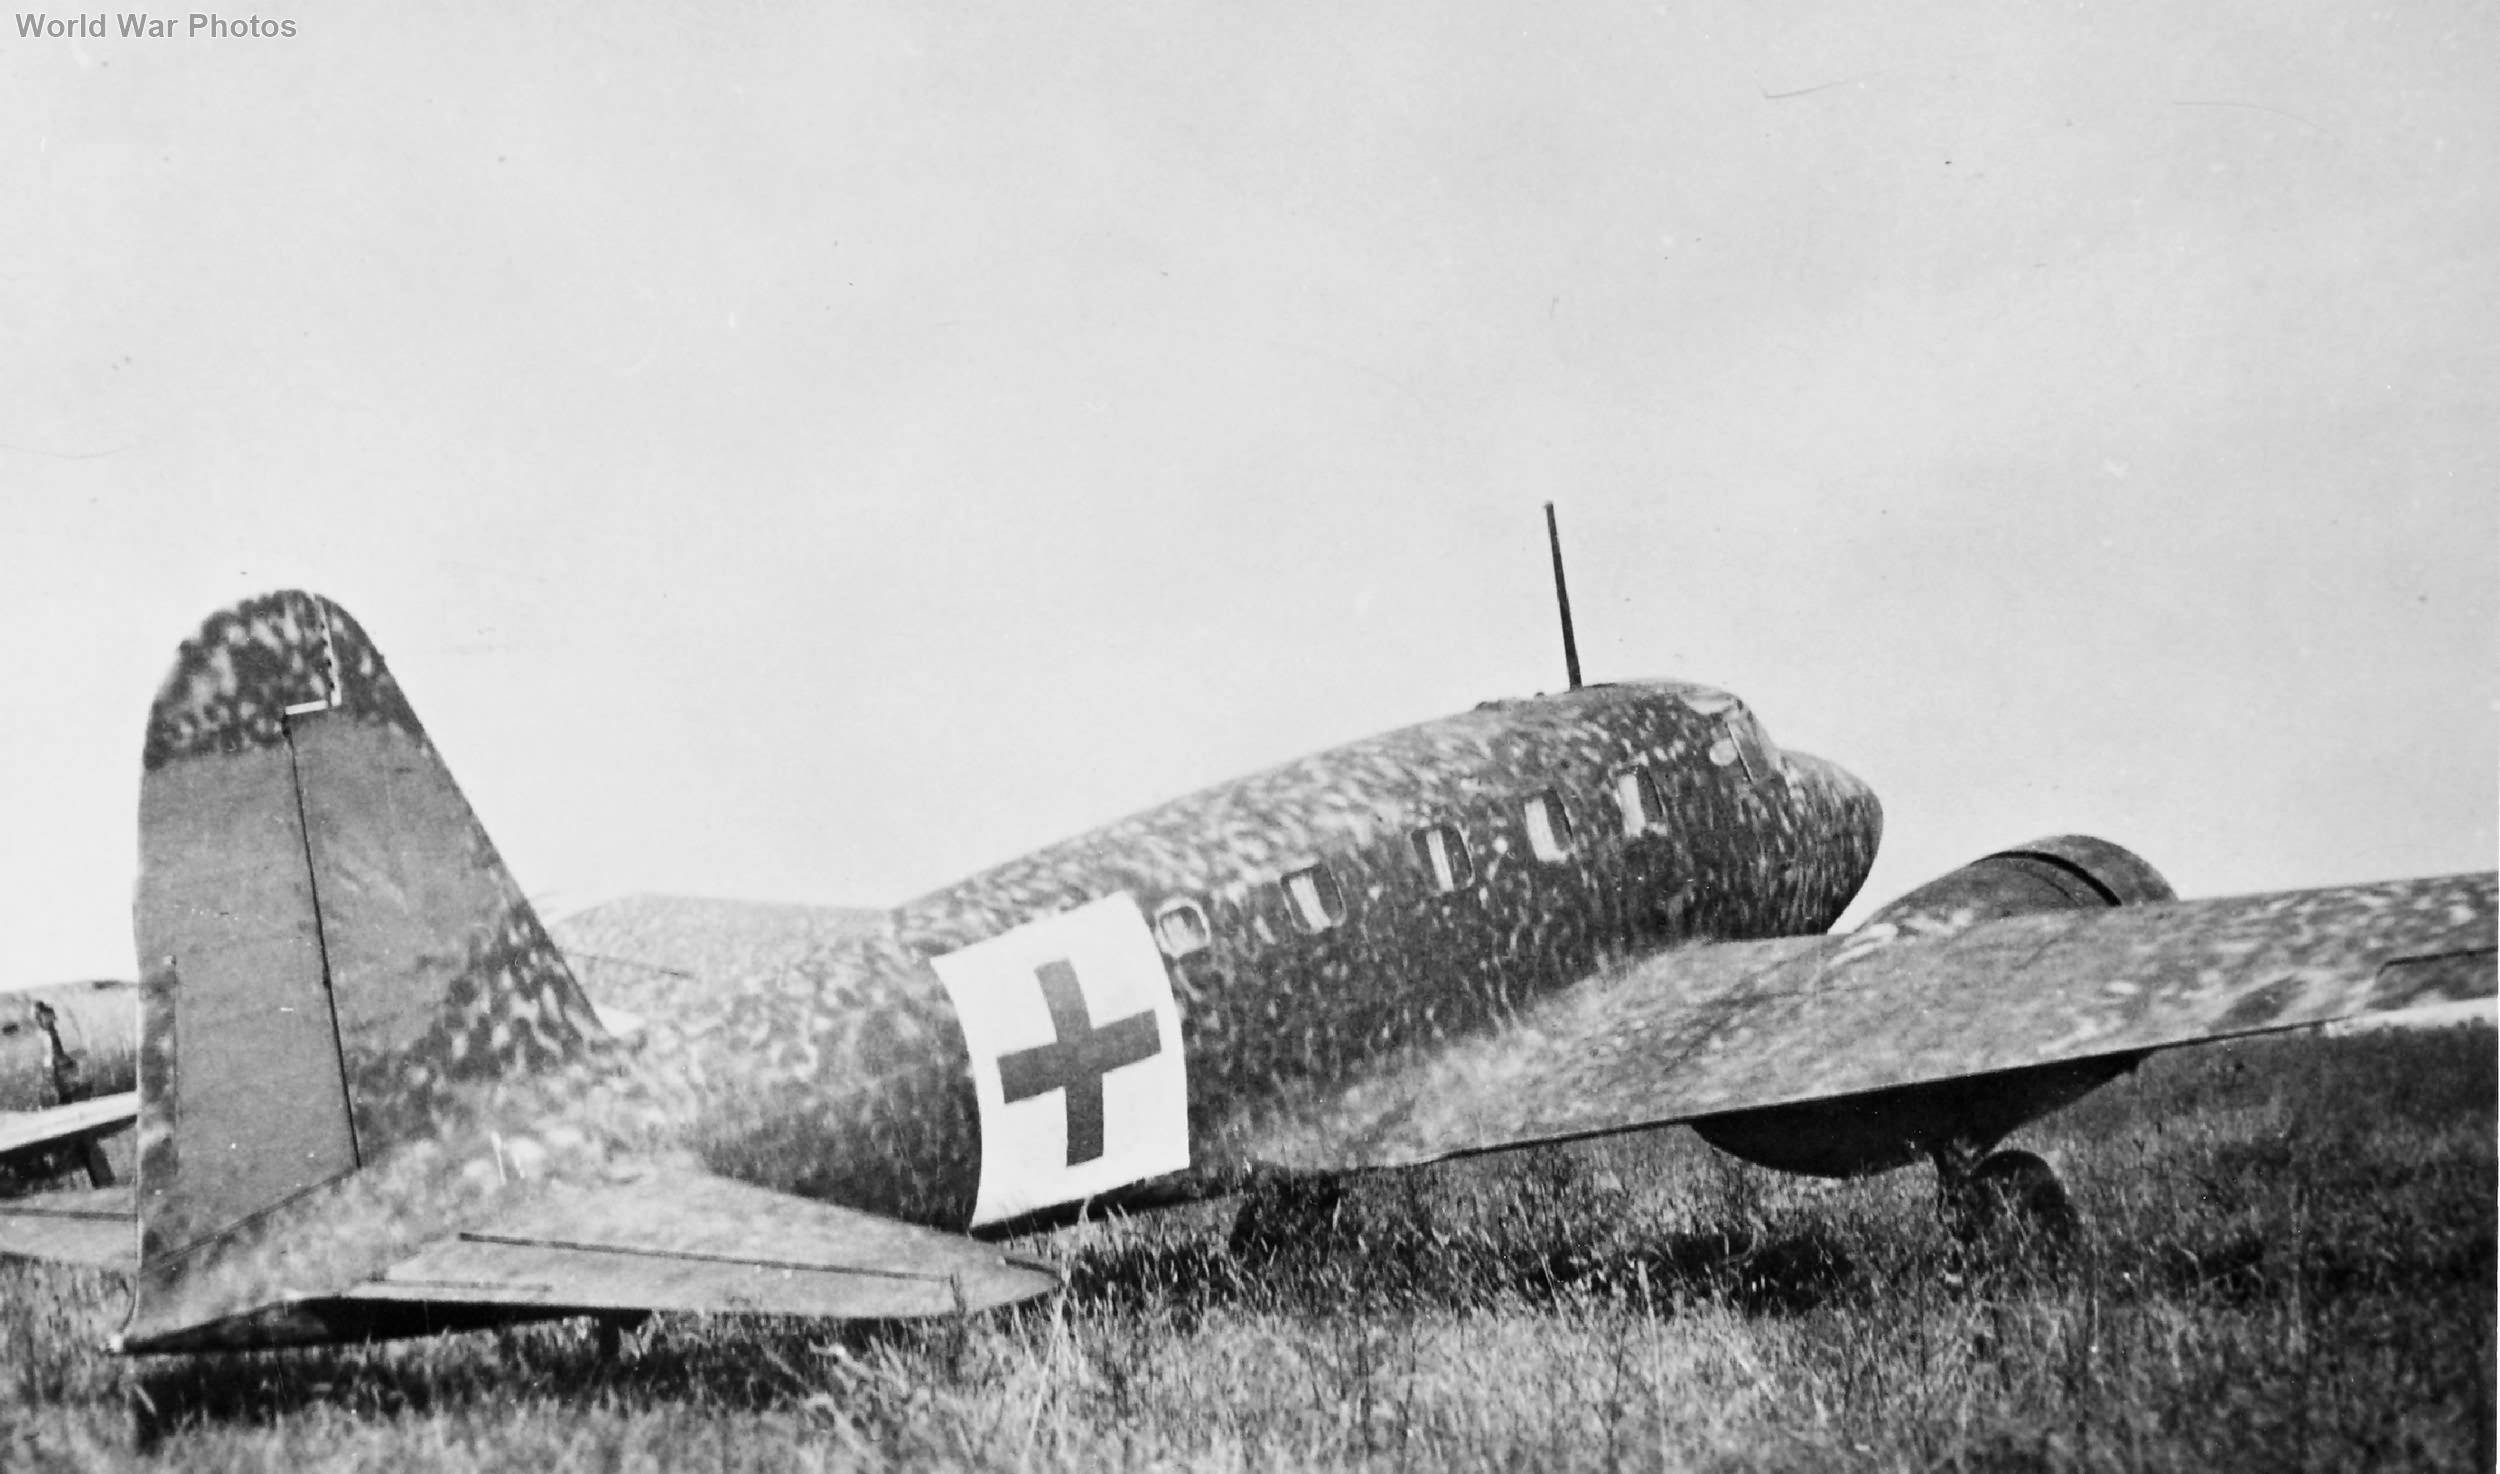 Ki-54c after surrender 1945